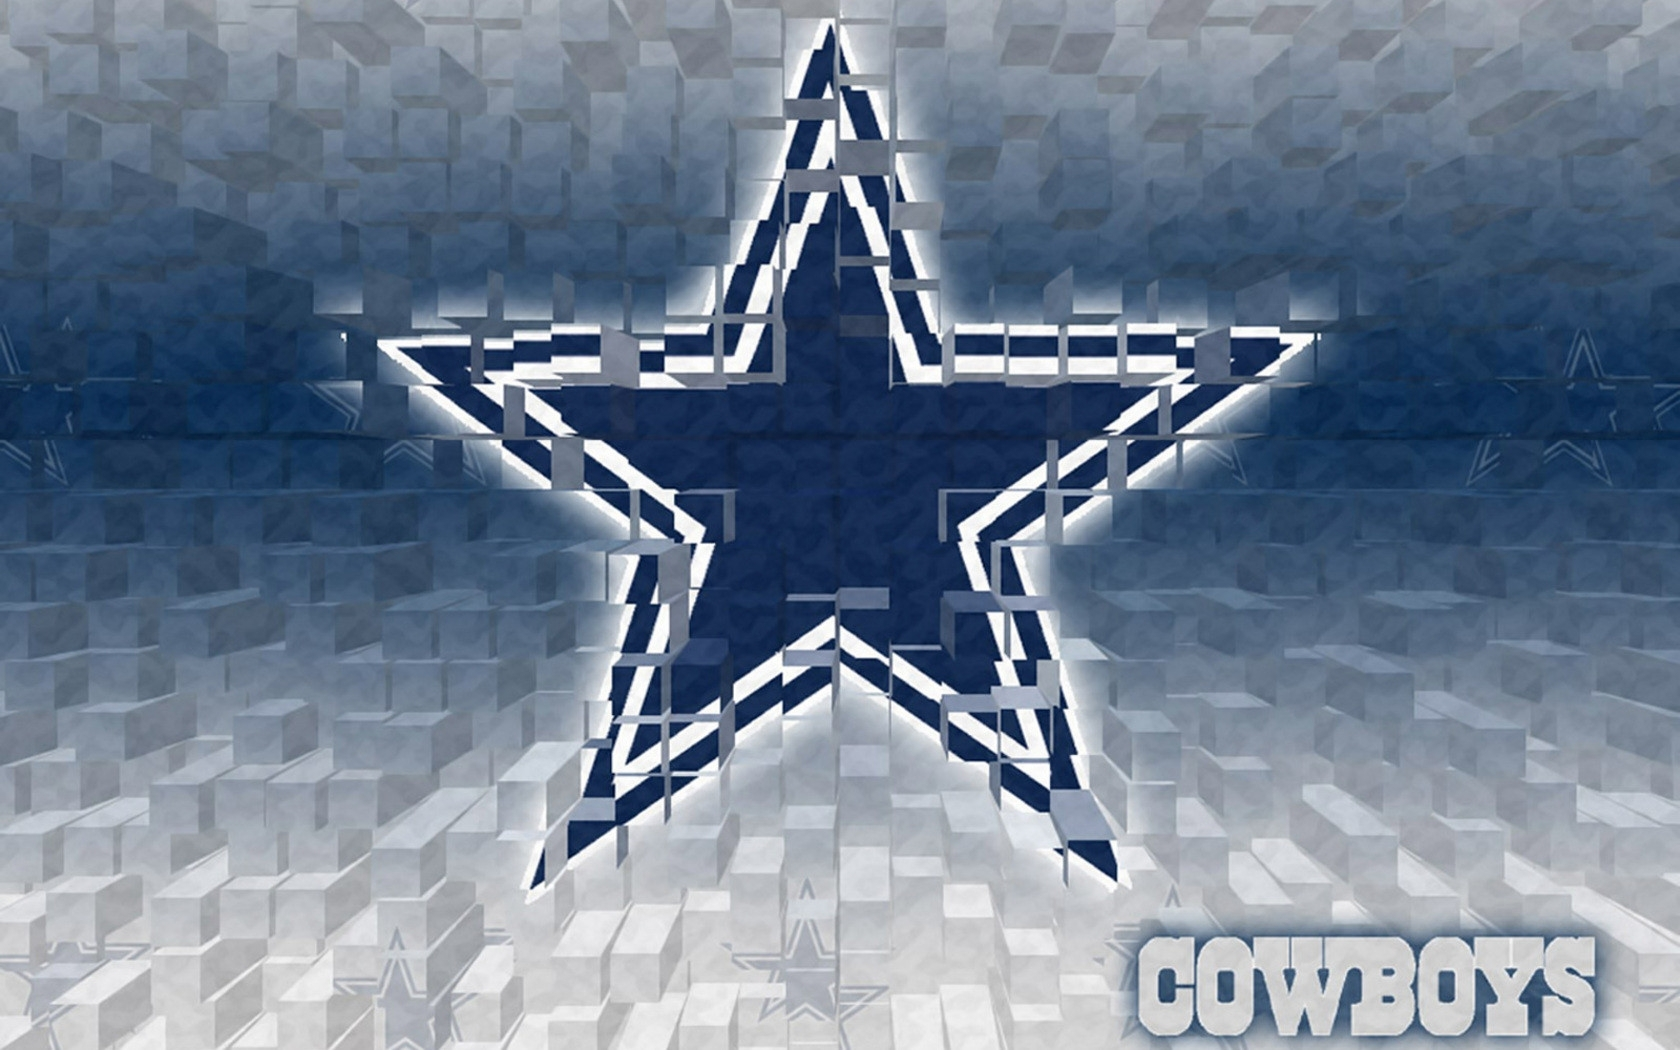 dallas-cowboys-logo-wallpaper1 - wallpaper.wiki